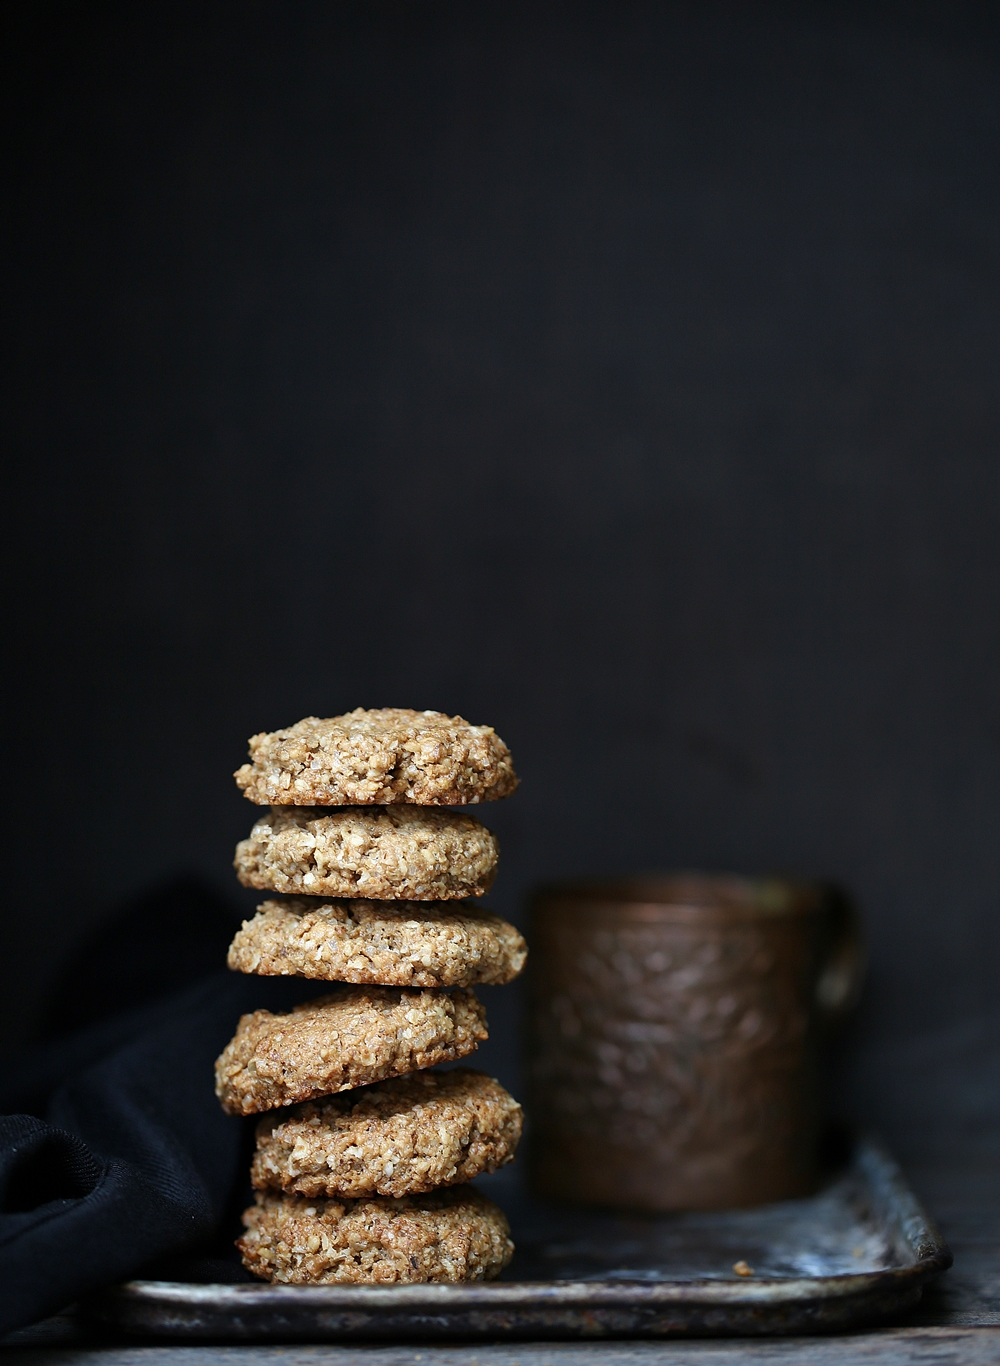 Oat & Walnut Cookies